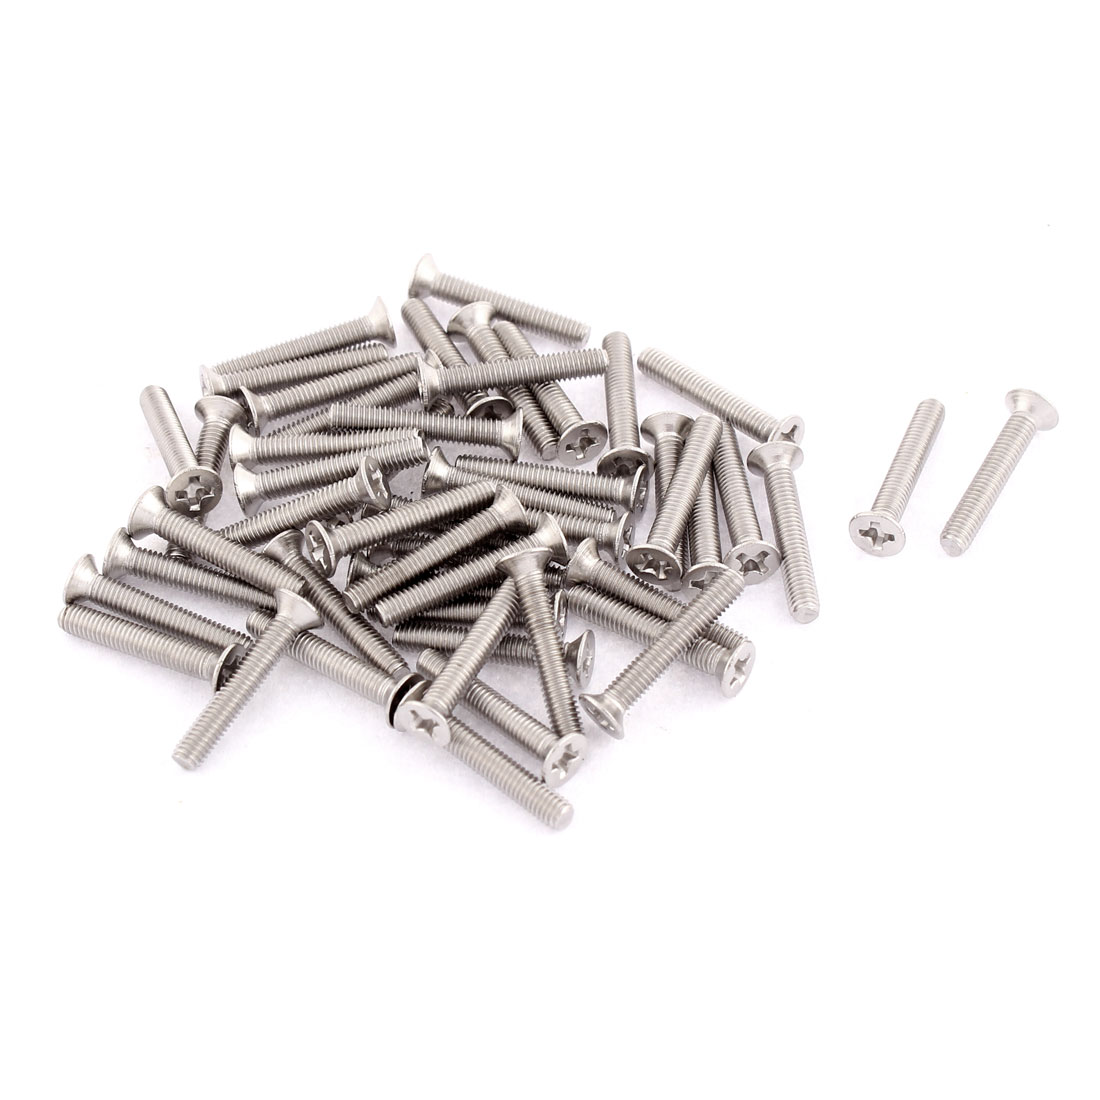 M3 x 18mm Phillips Head Stainless Steel Countersunk Bolts Machine Screws 50pcs